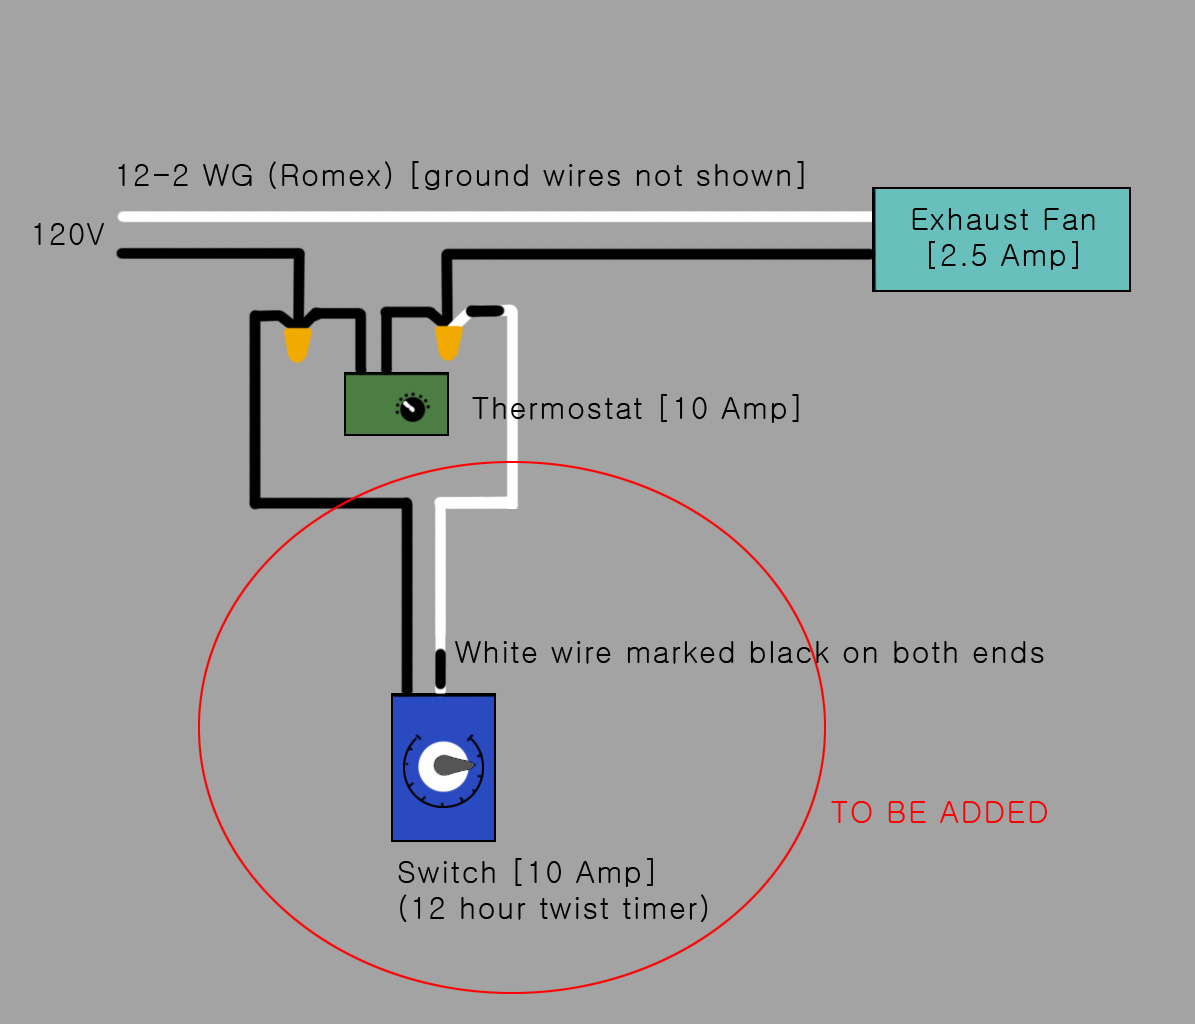 hight resolution of attic fan switch wiring diagram free download basic guide wiring attic fan wiring diagram with timer